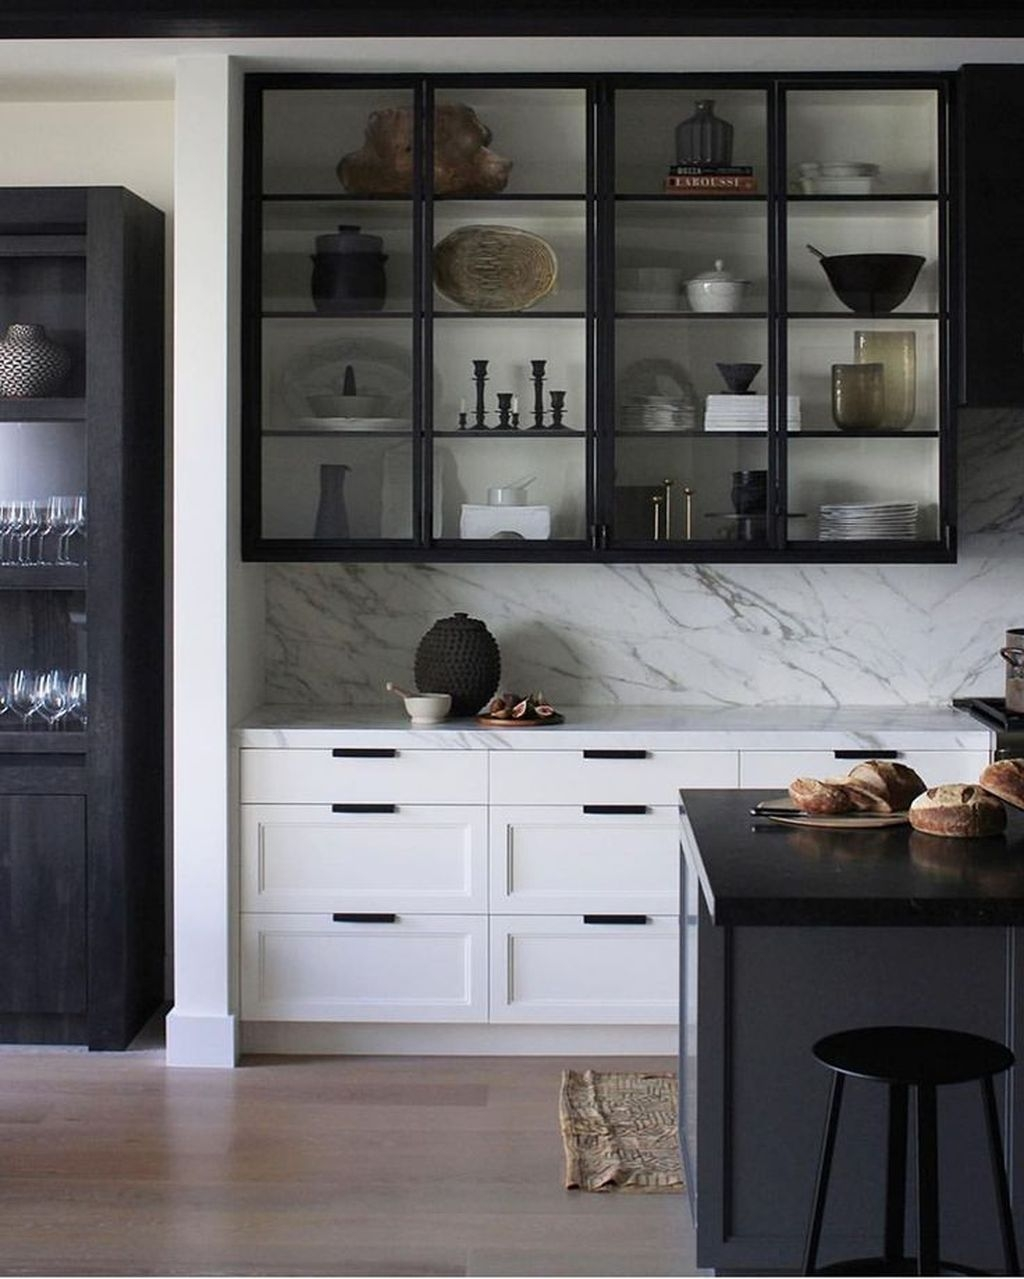 Incredible Black And White Kitchen Ideas To Try30